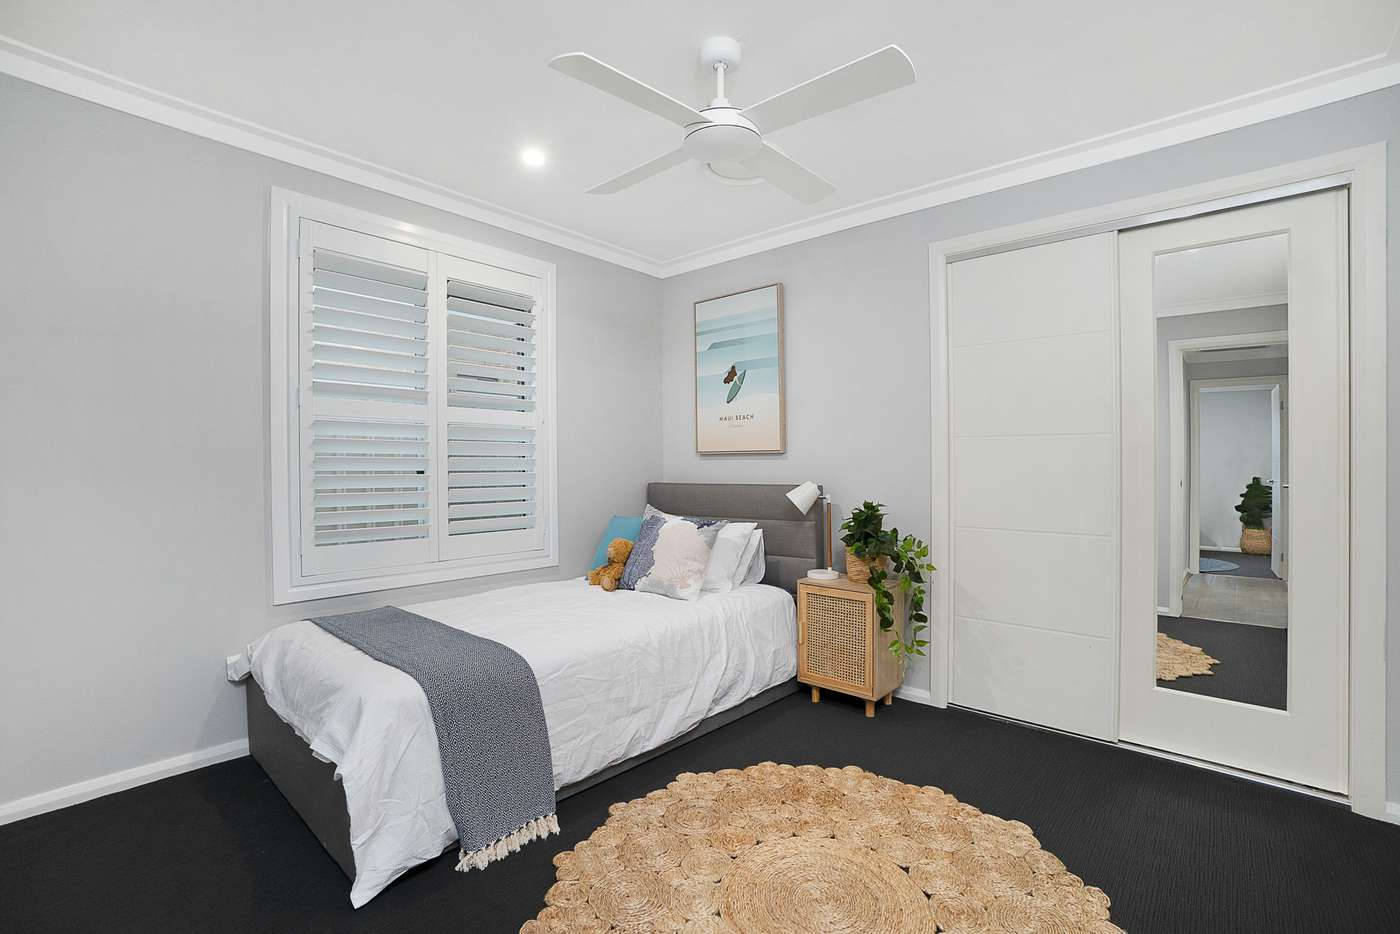 Sixth view of Homely house listing, 13 Liam Street, Schofields NSW 2762